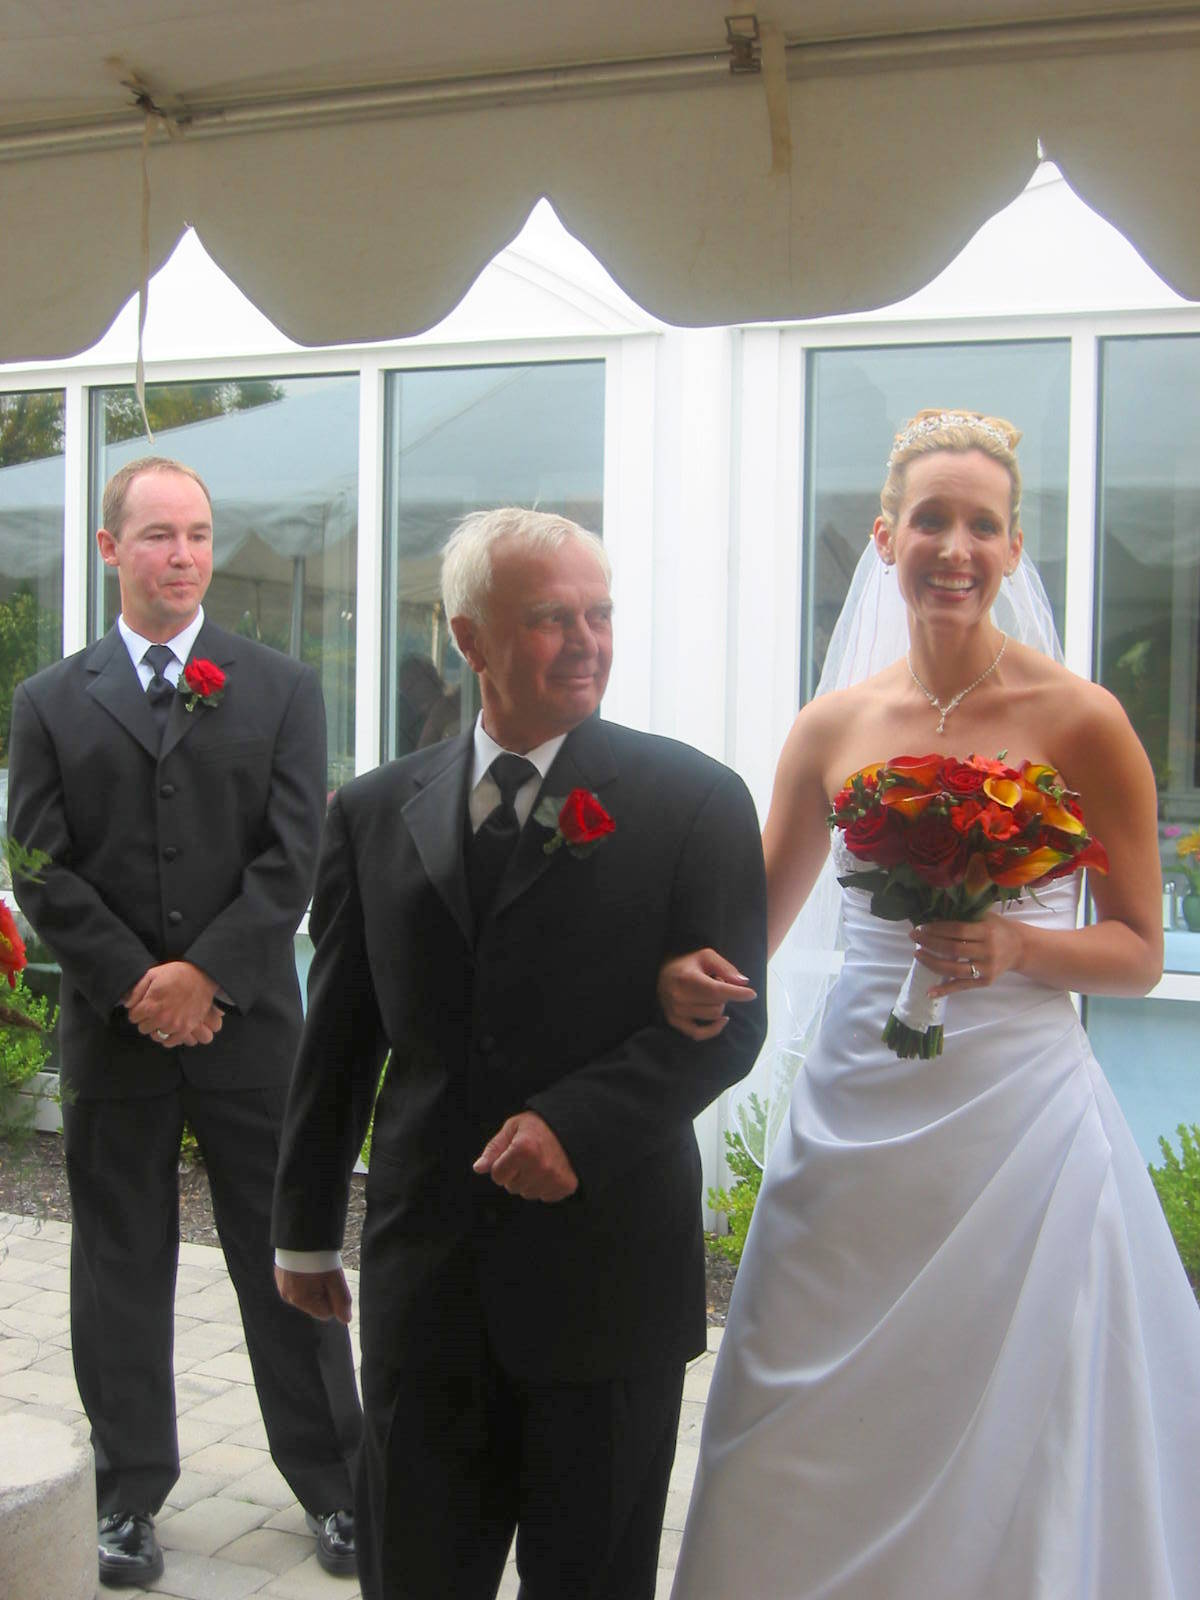 red, Bride, Father, Of, The, Beau weddings events